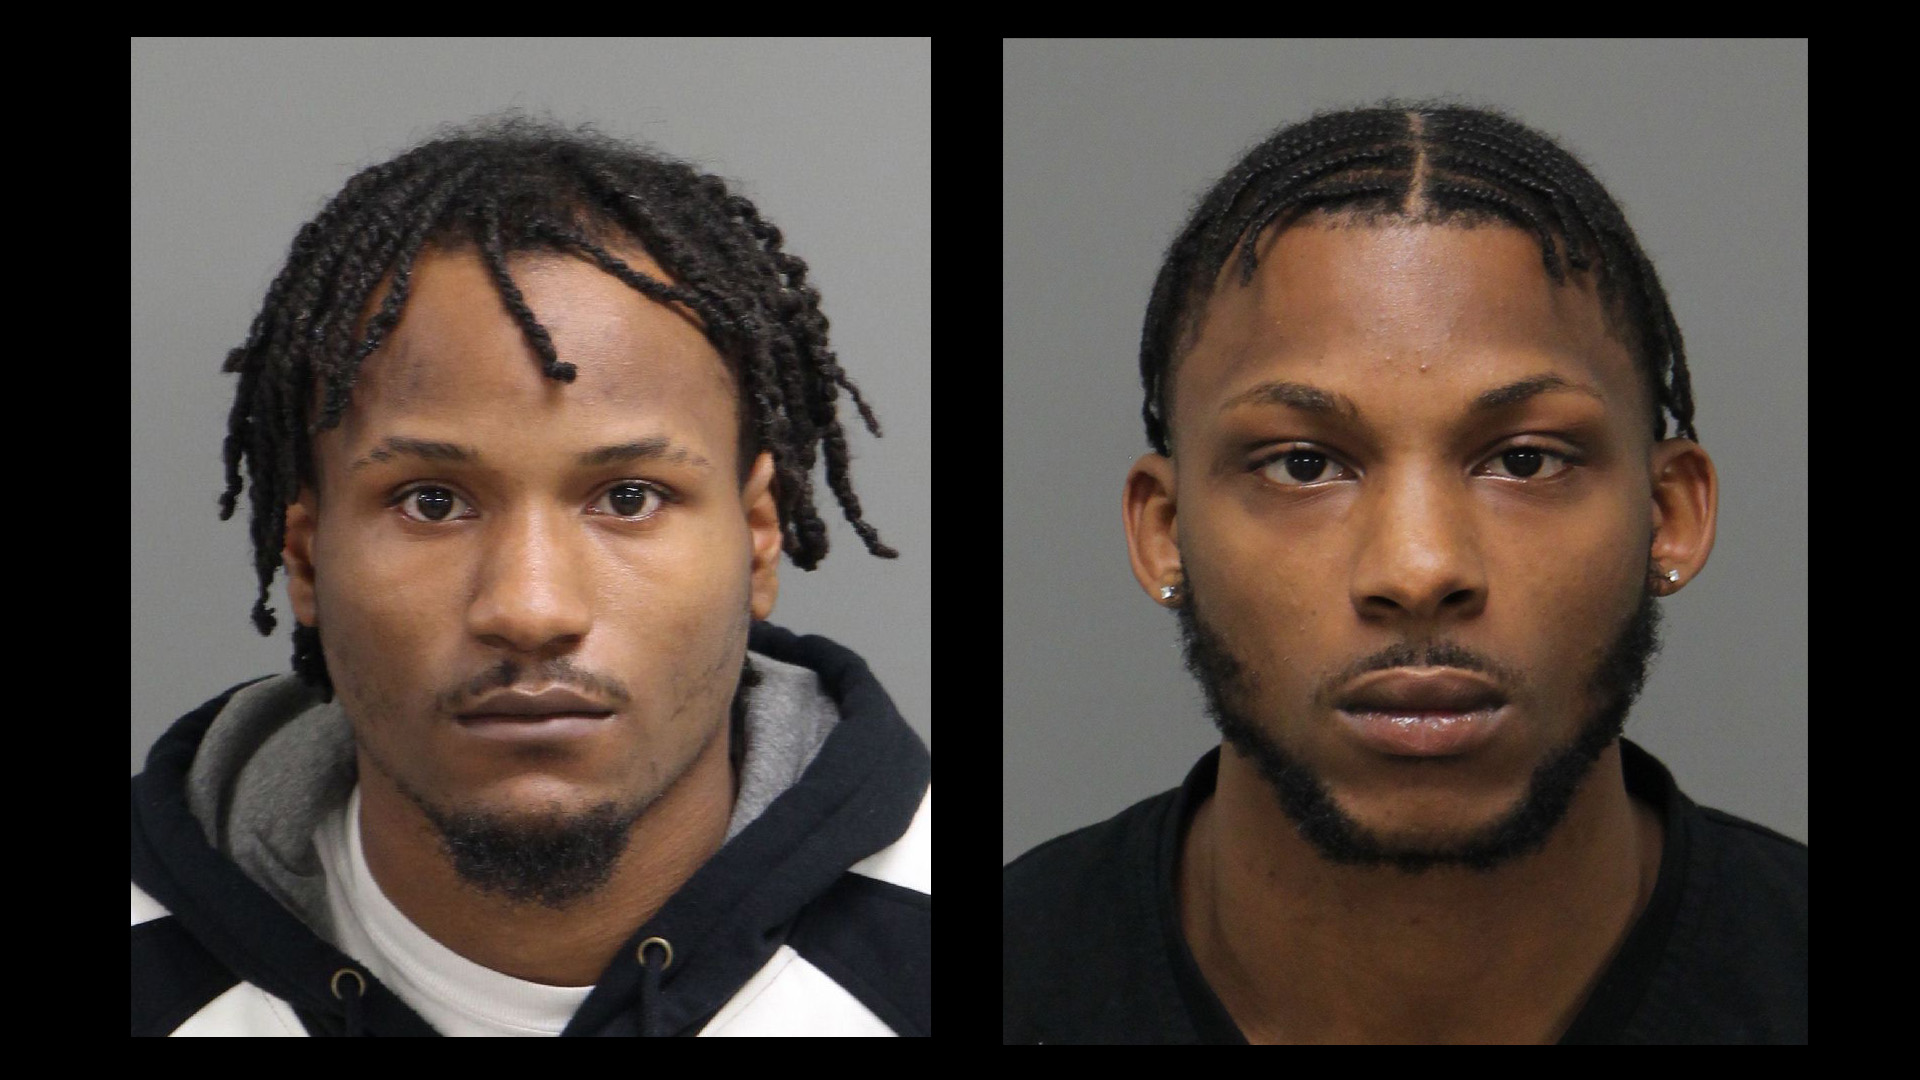 Police: 2 Raleigh men live streamed drug use with child in room